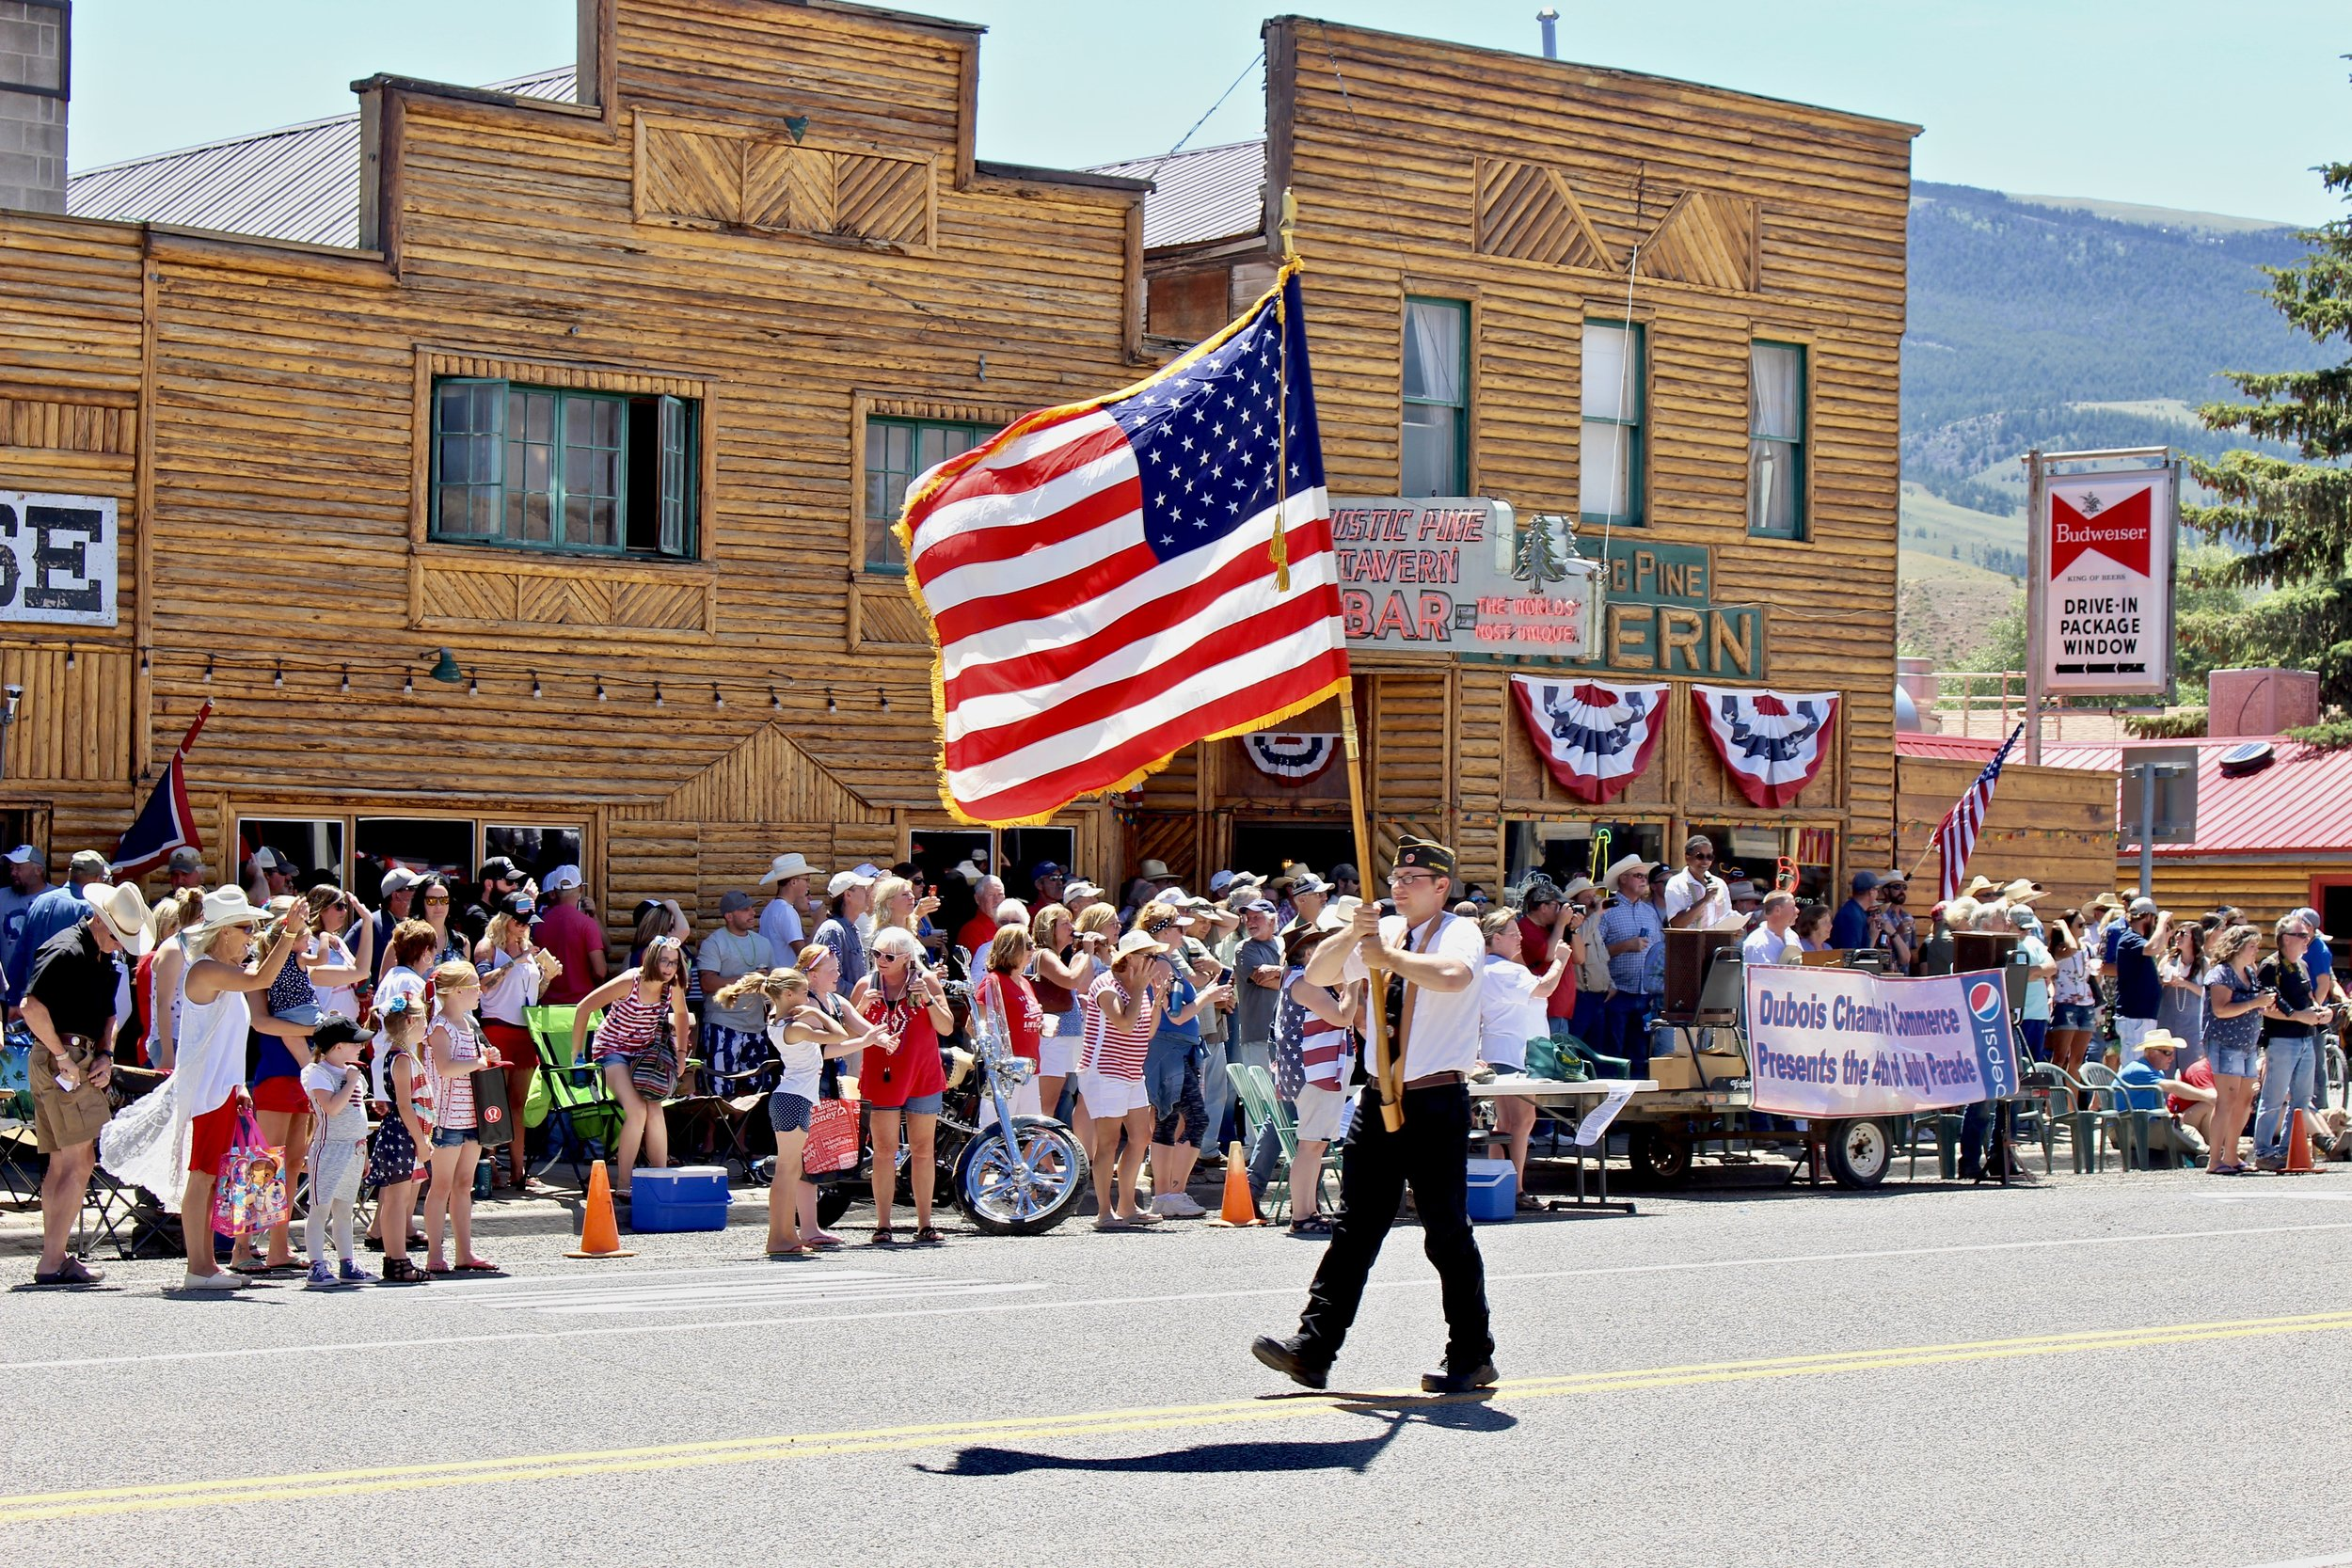 The Flag leads the Independence Day parade in Dubois, Wyoming